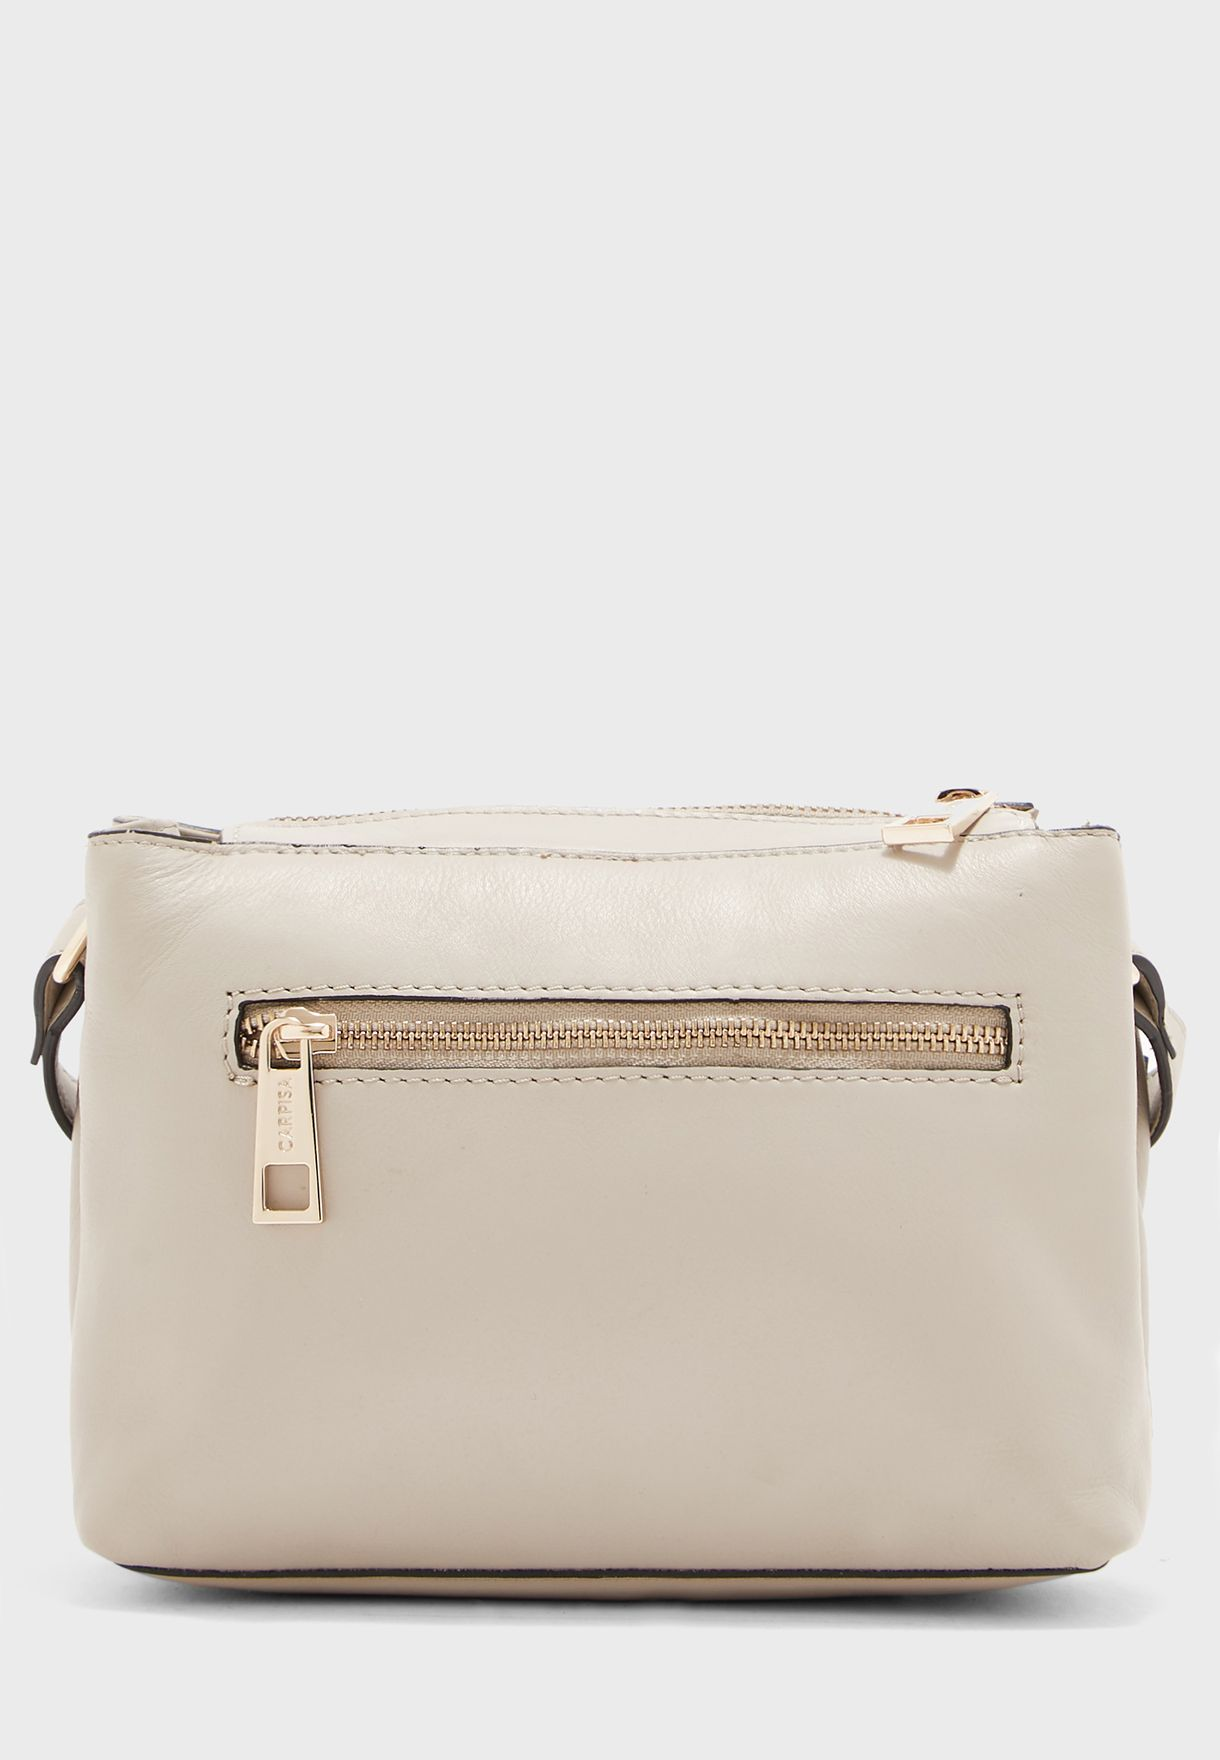 Zipped Central Closure Belted Crossbody